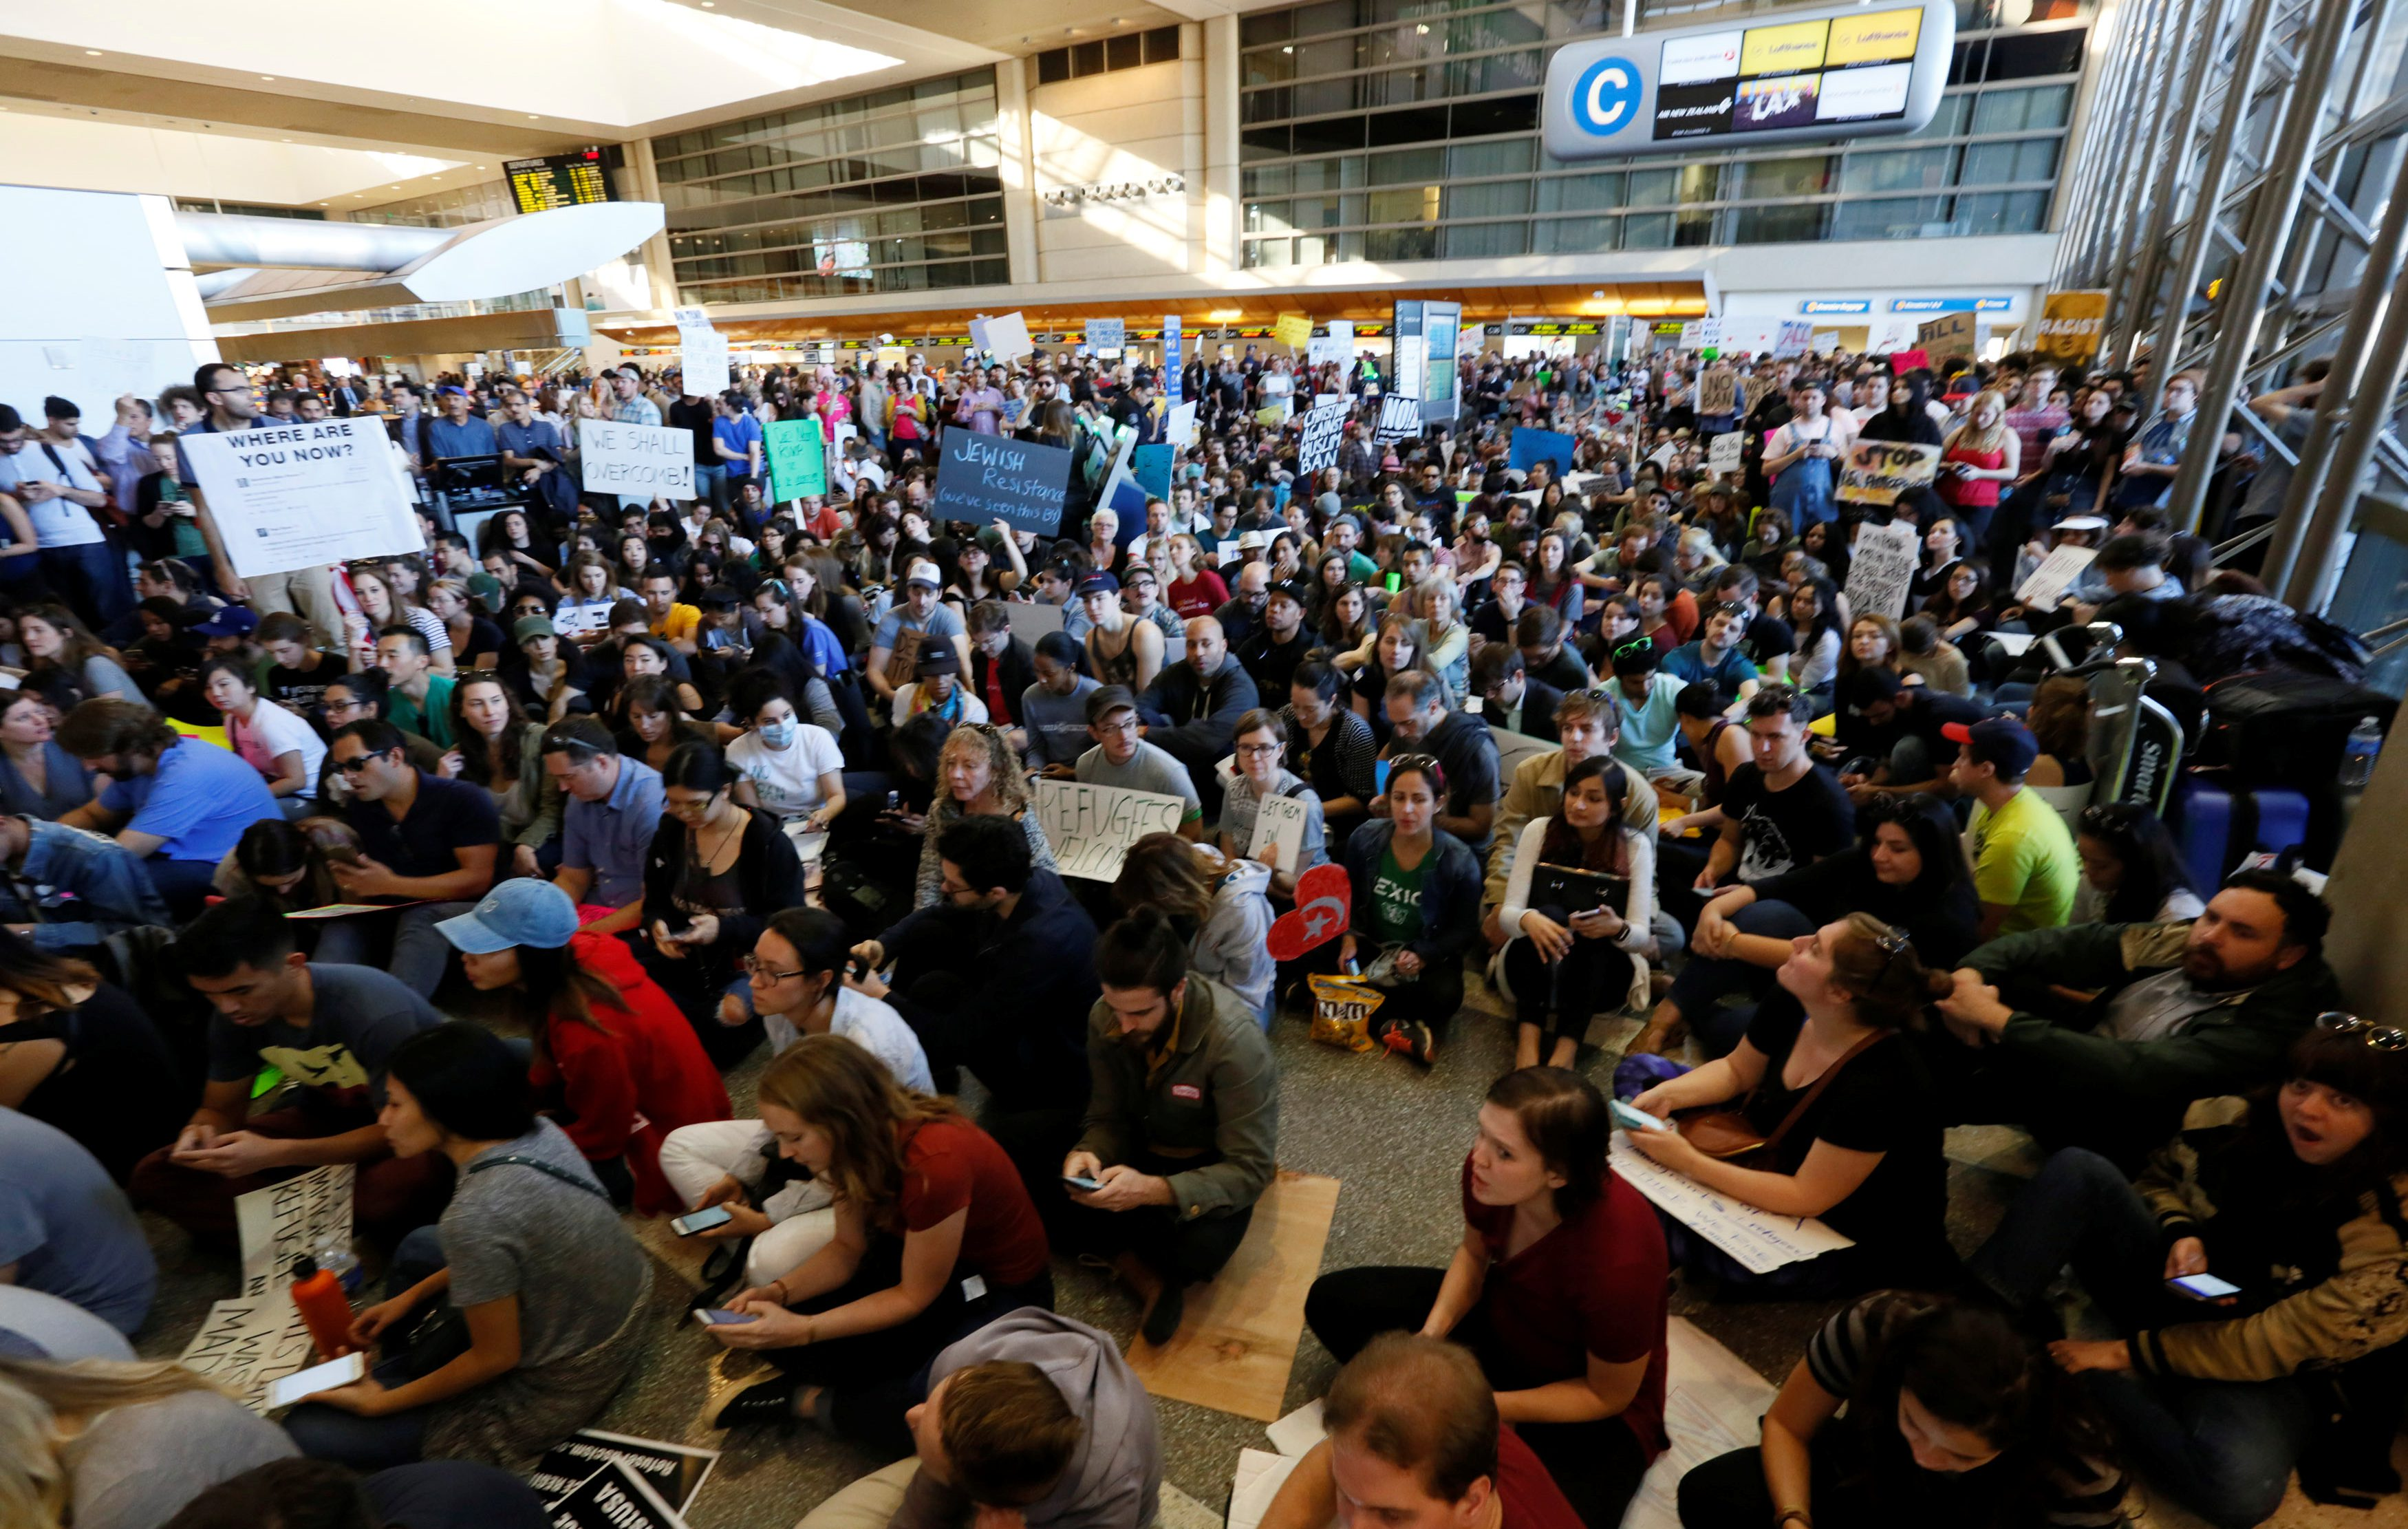 Demonstrators sit inside LAX international terminal and yell slogans during protest against the travel ban imposed by U.S. President Donald Trump's executive order, at Los Angeles International Airport in Los Angeles